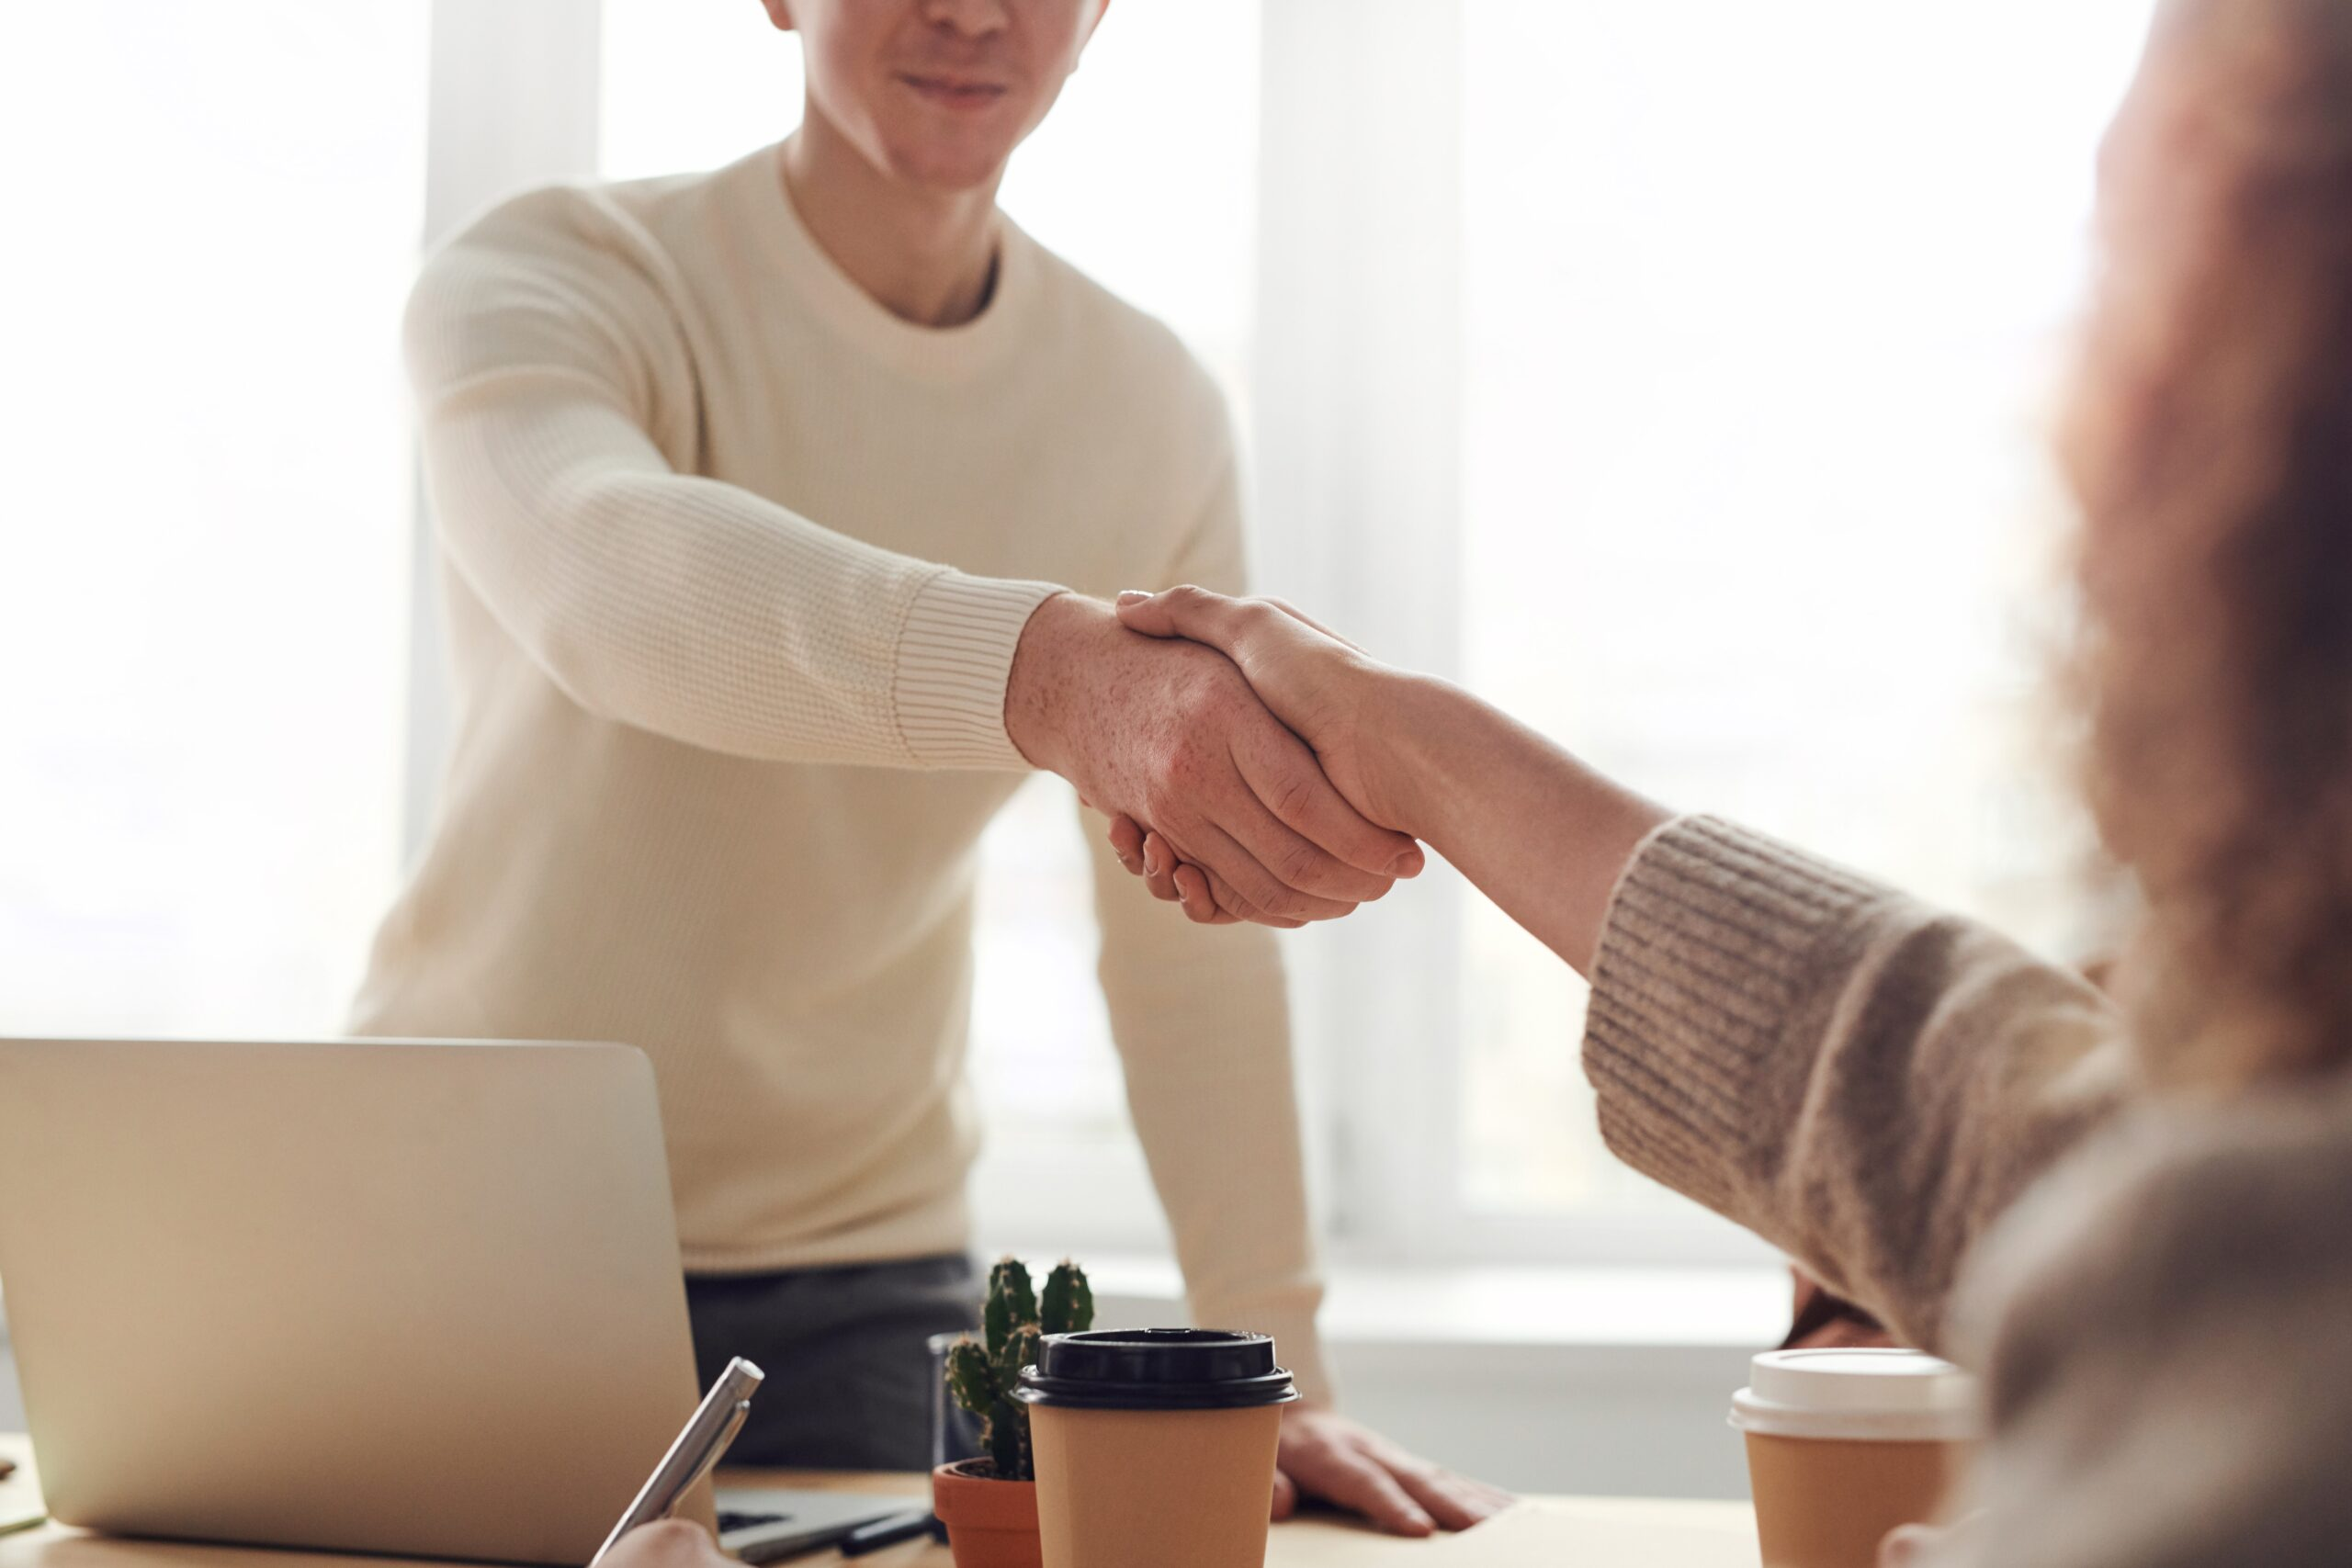 Which Type Of Recruiter Gets The Job Done?  A Transactional Or Trusted Advisor Recruiter